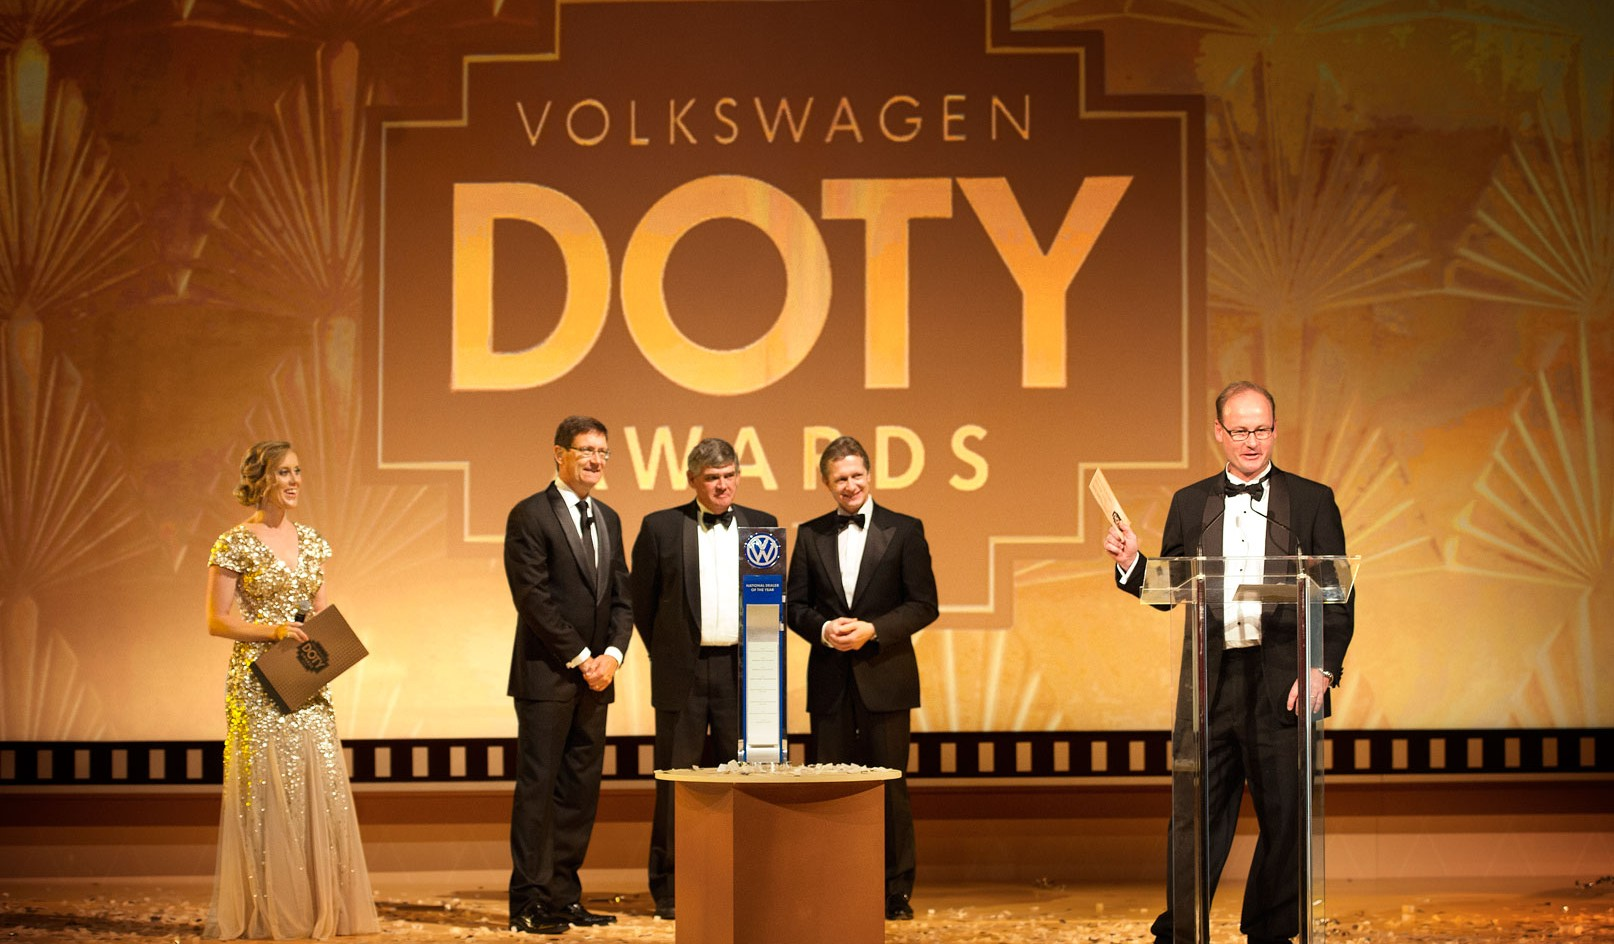 <div>Events</div><div> <a href='http://www.nedmeldrum.com.au/project/volkswagen-dealer-of-the-year/'>View Series</a></div>